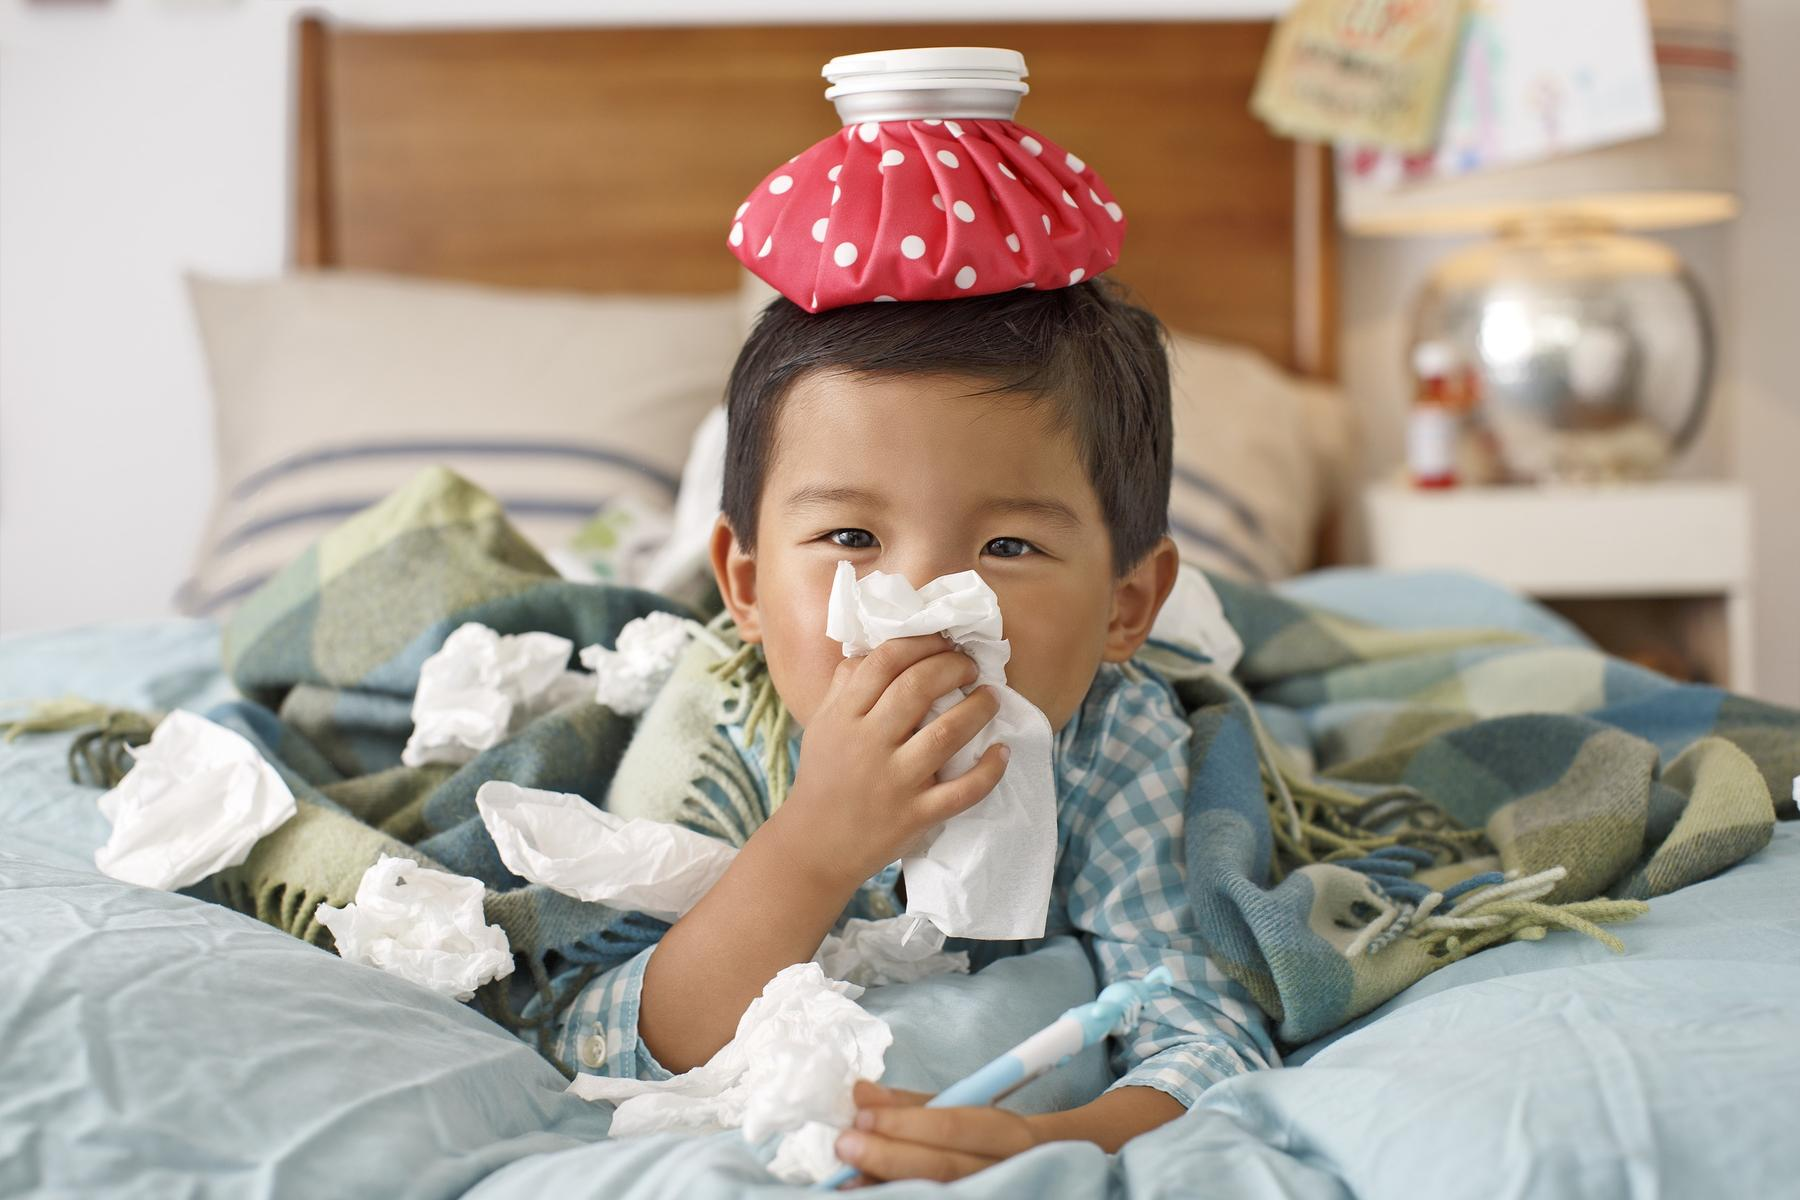 How to Get Through Cold and Flu Season Without Getting Sick